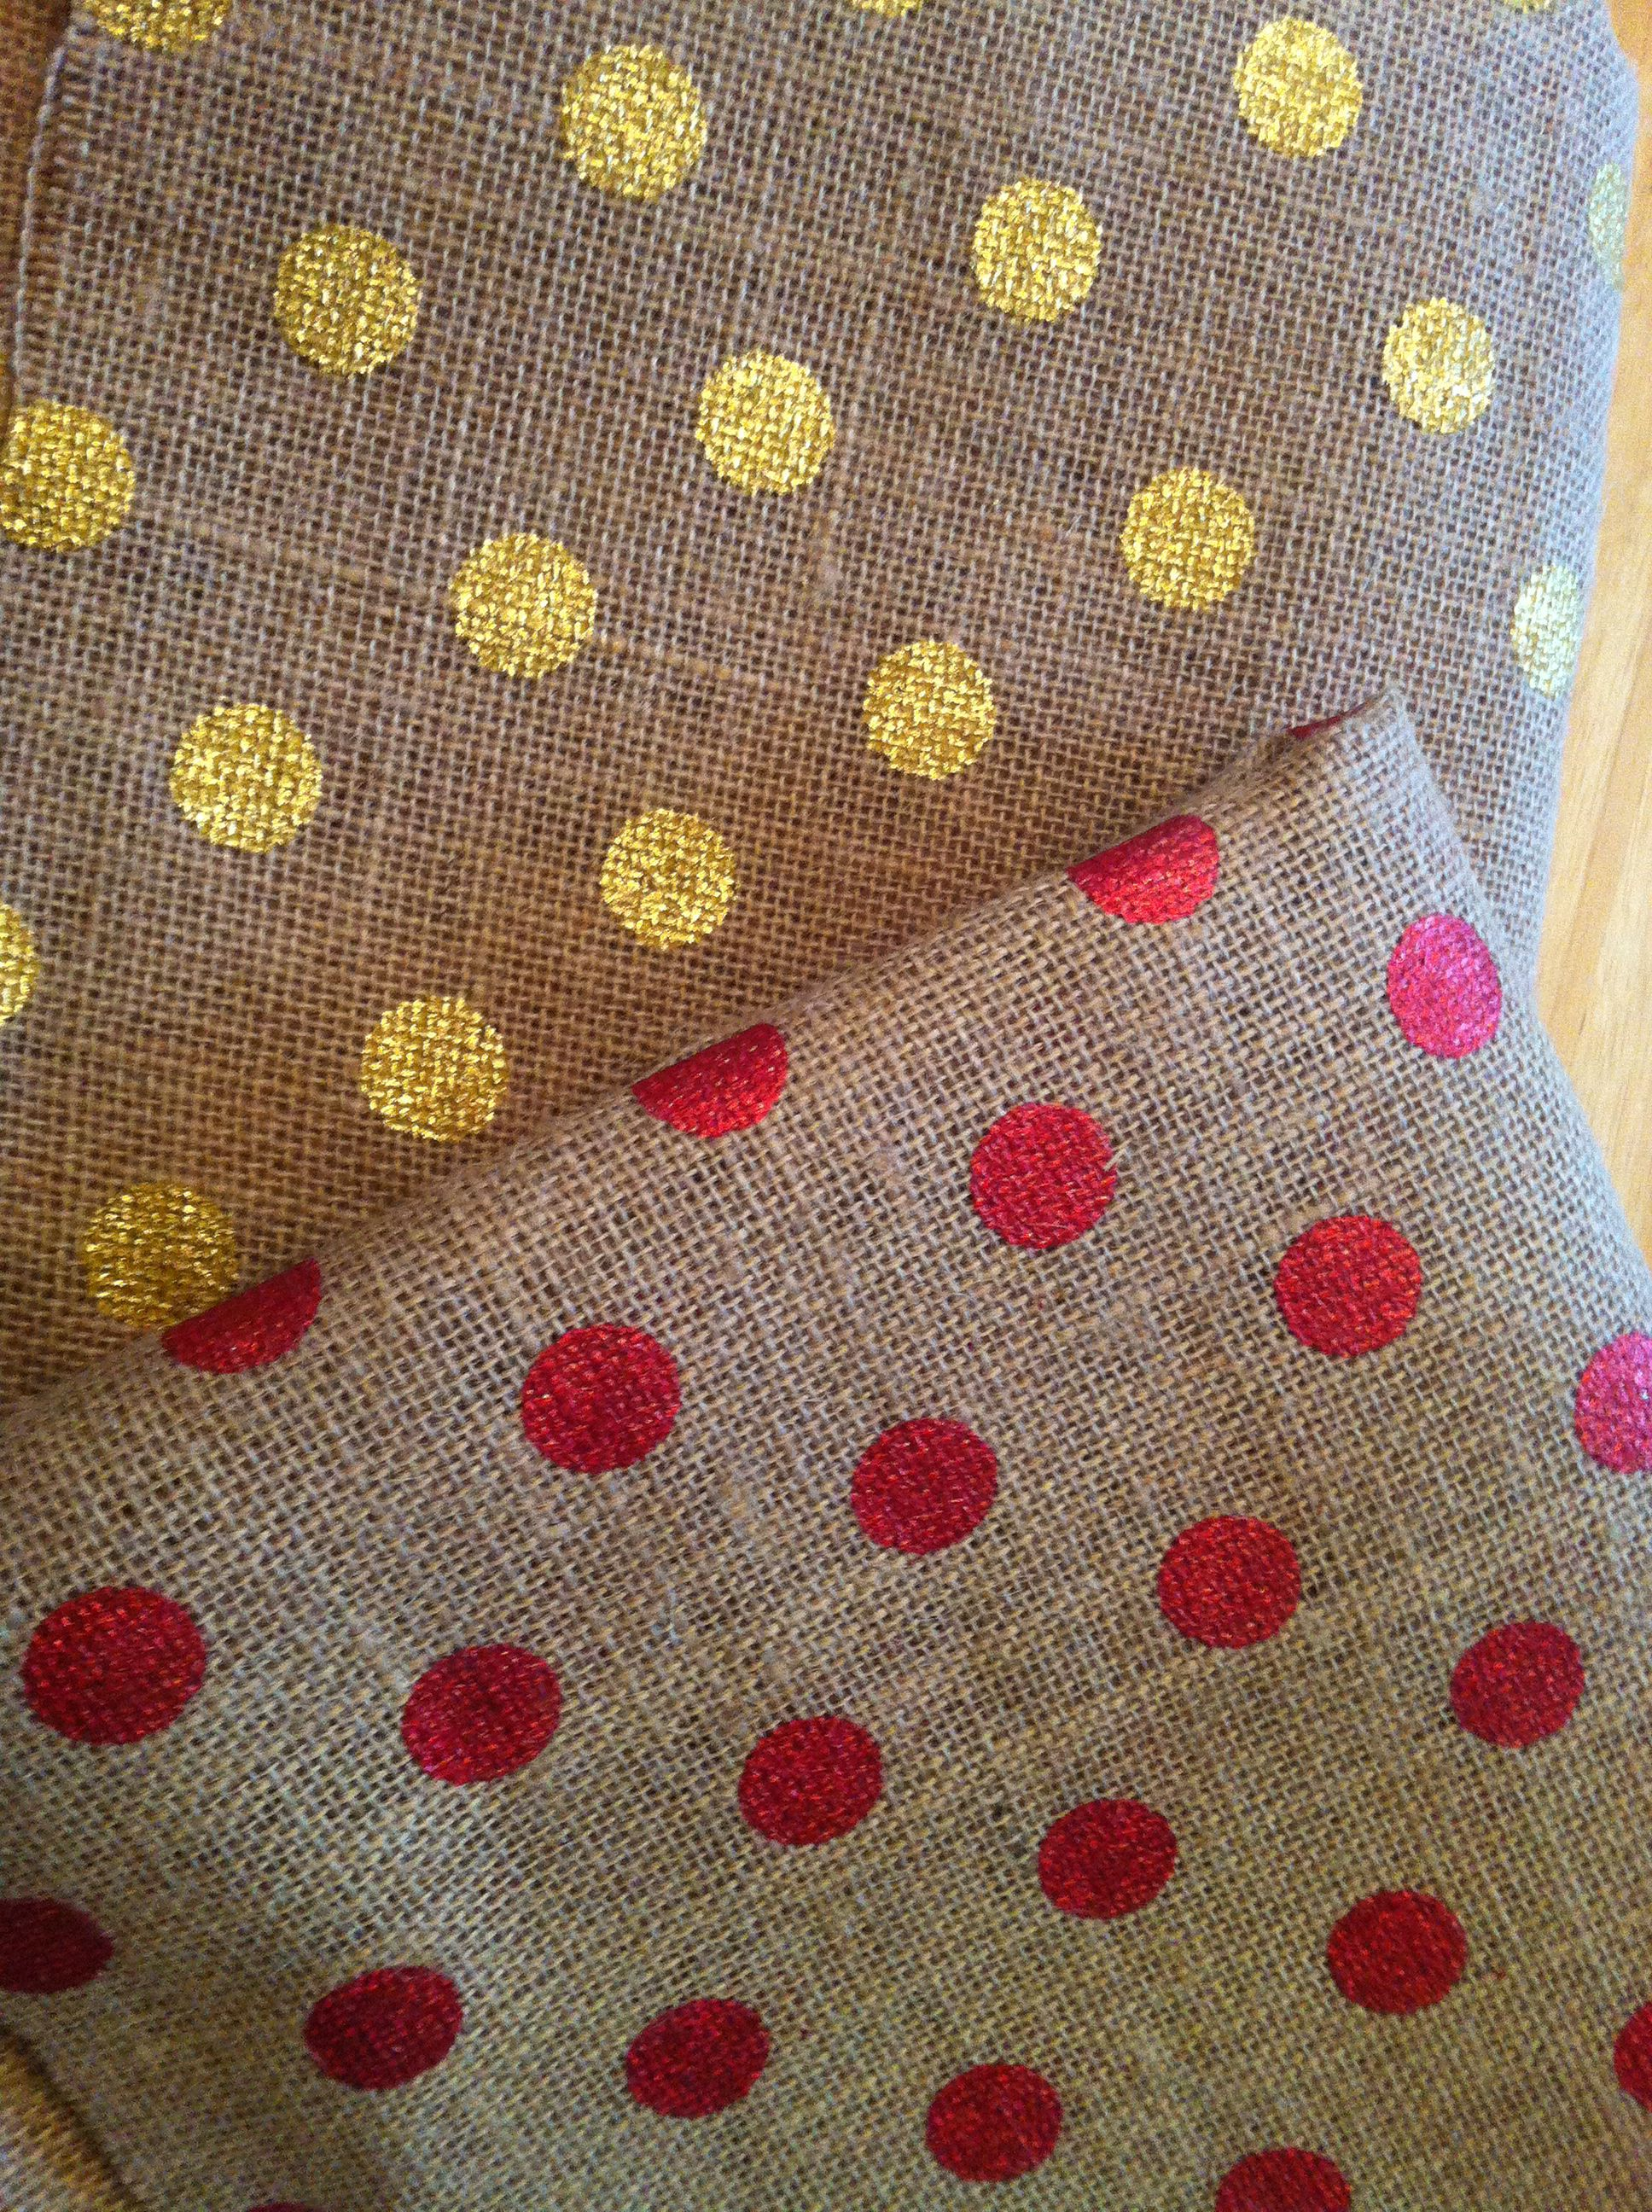 Metallic dot burlap from Jo-Ann Fabrics